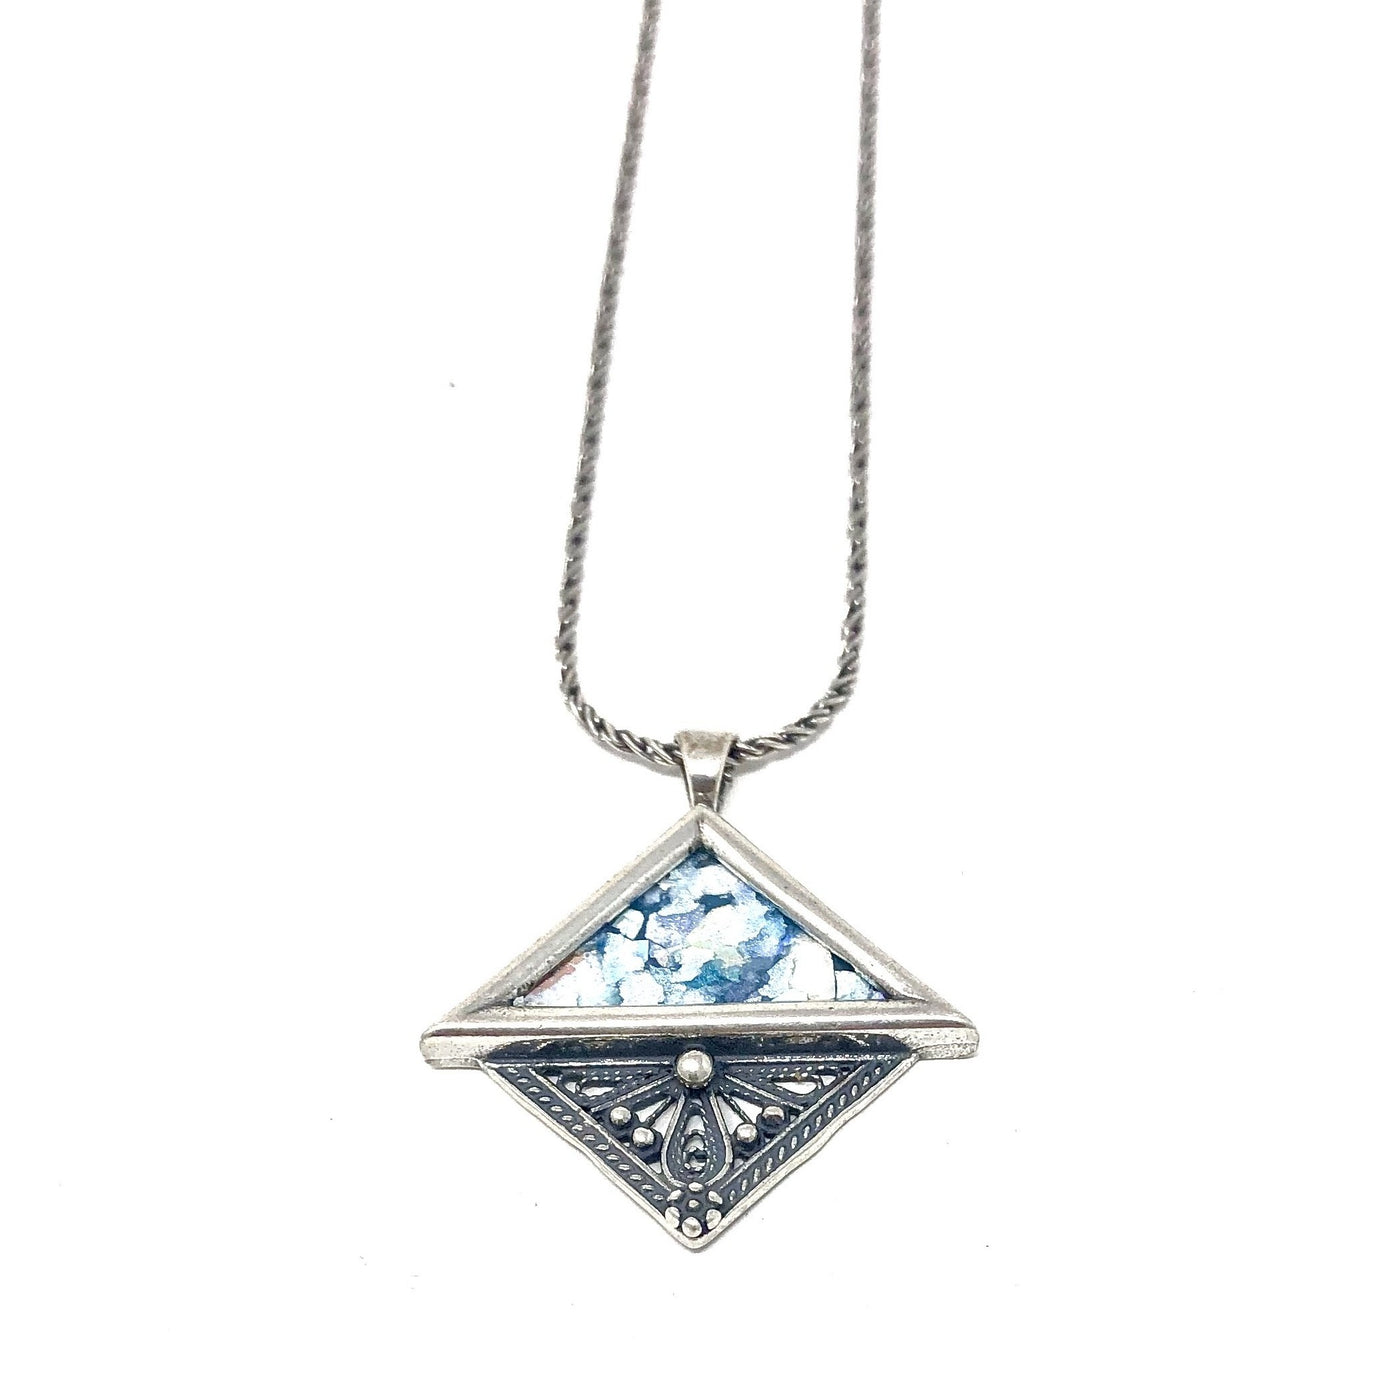 DSB P621 ROMAN GLASS HALF SQUARE NECKLACE